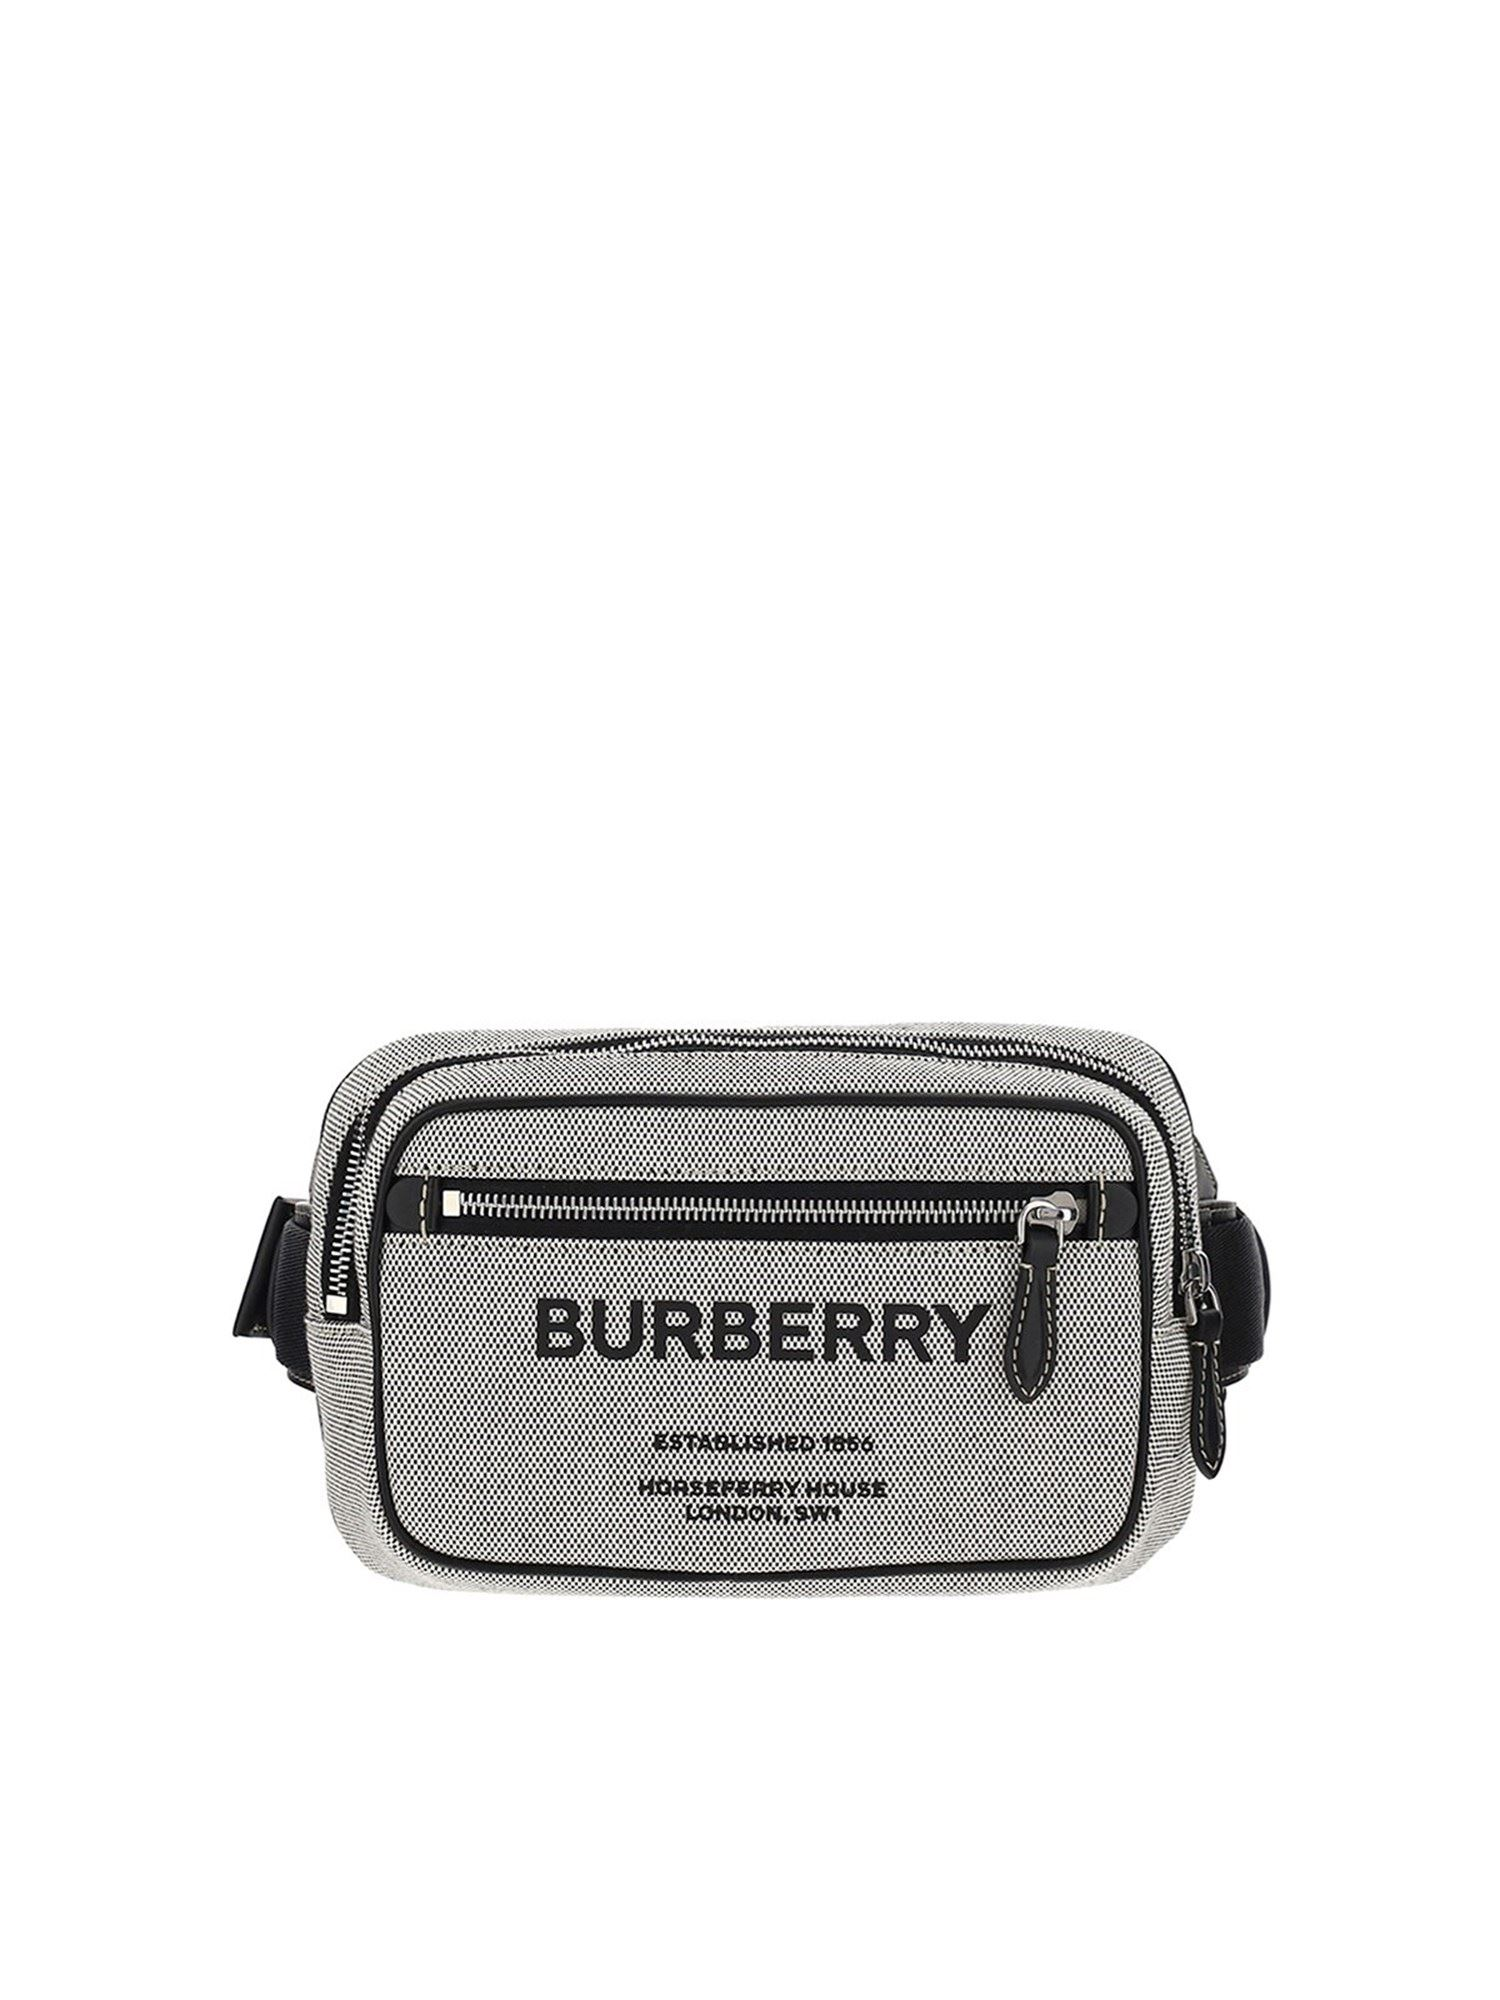 BURBERRY COTTON BELT BAG WITH LOGO IN GREY